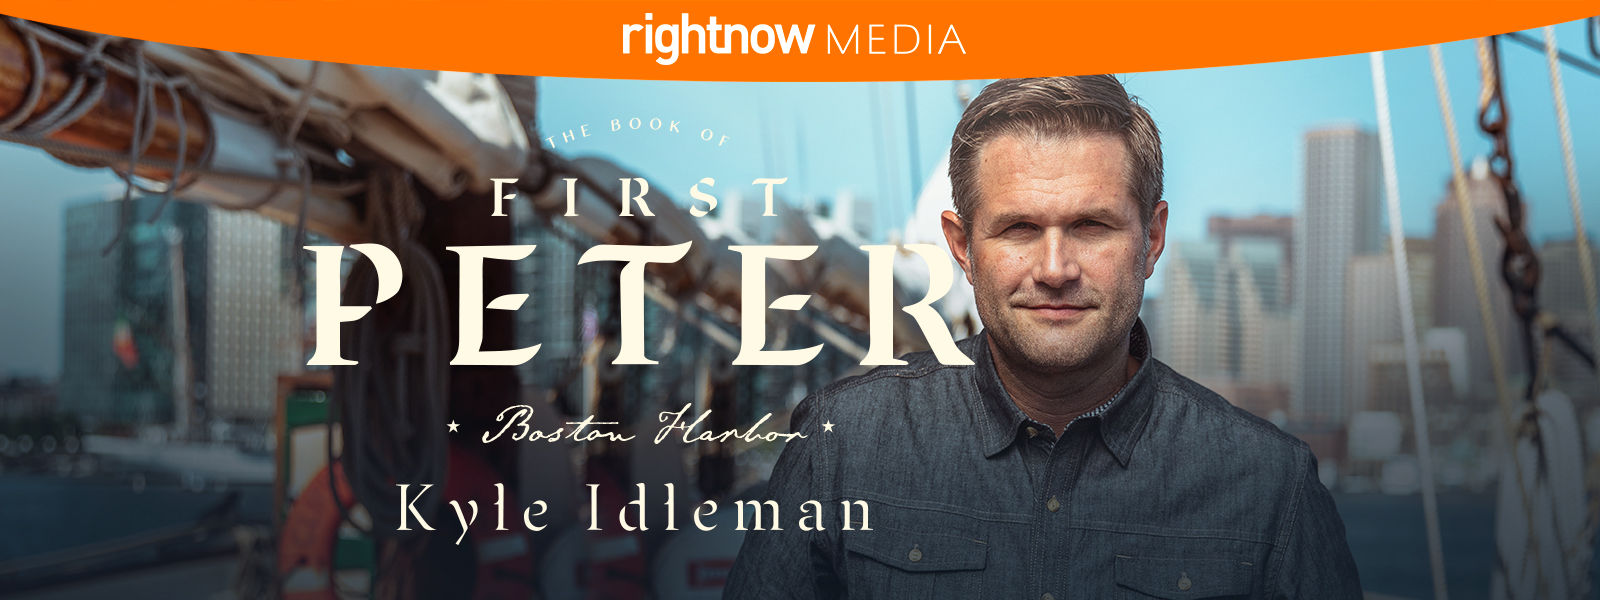 RightNow Media :: Streaming Video Bible Study : The Book of 1 Peter